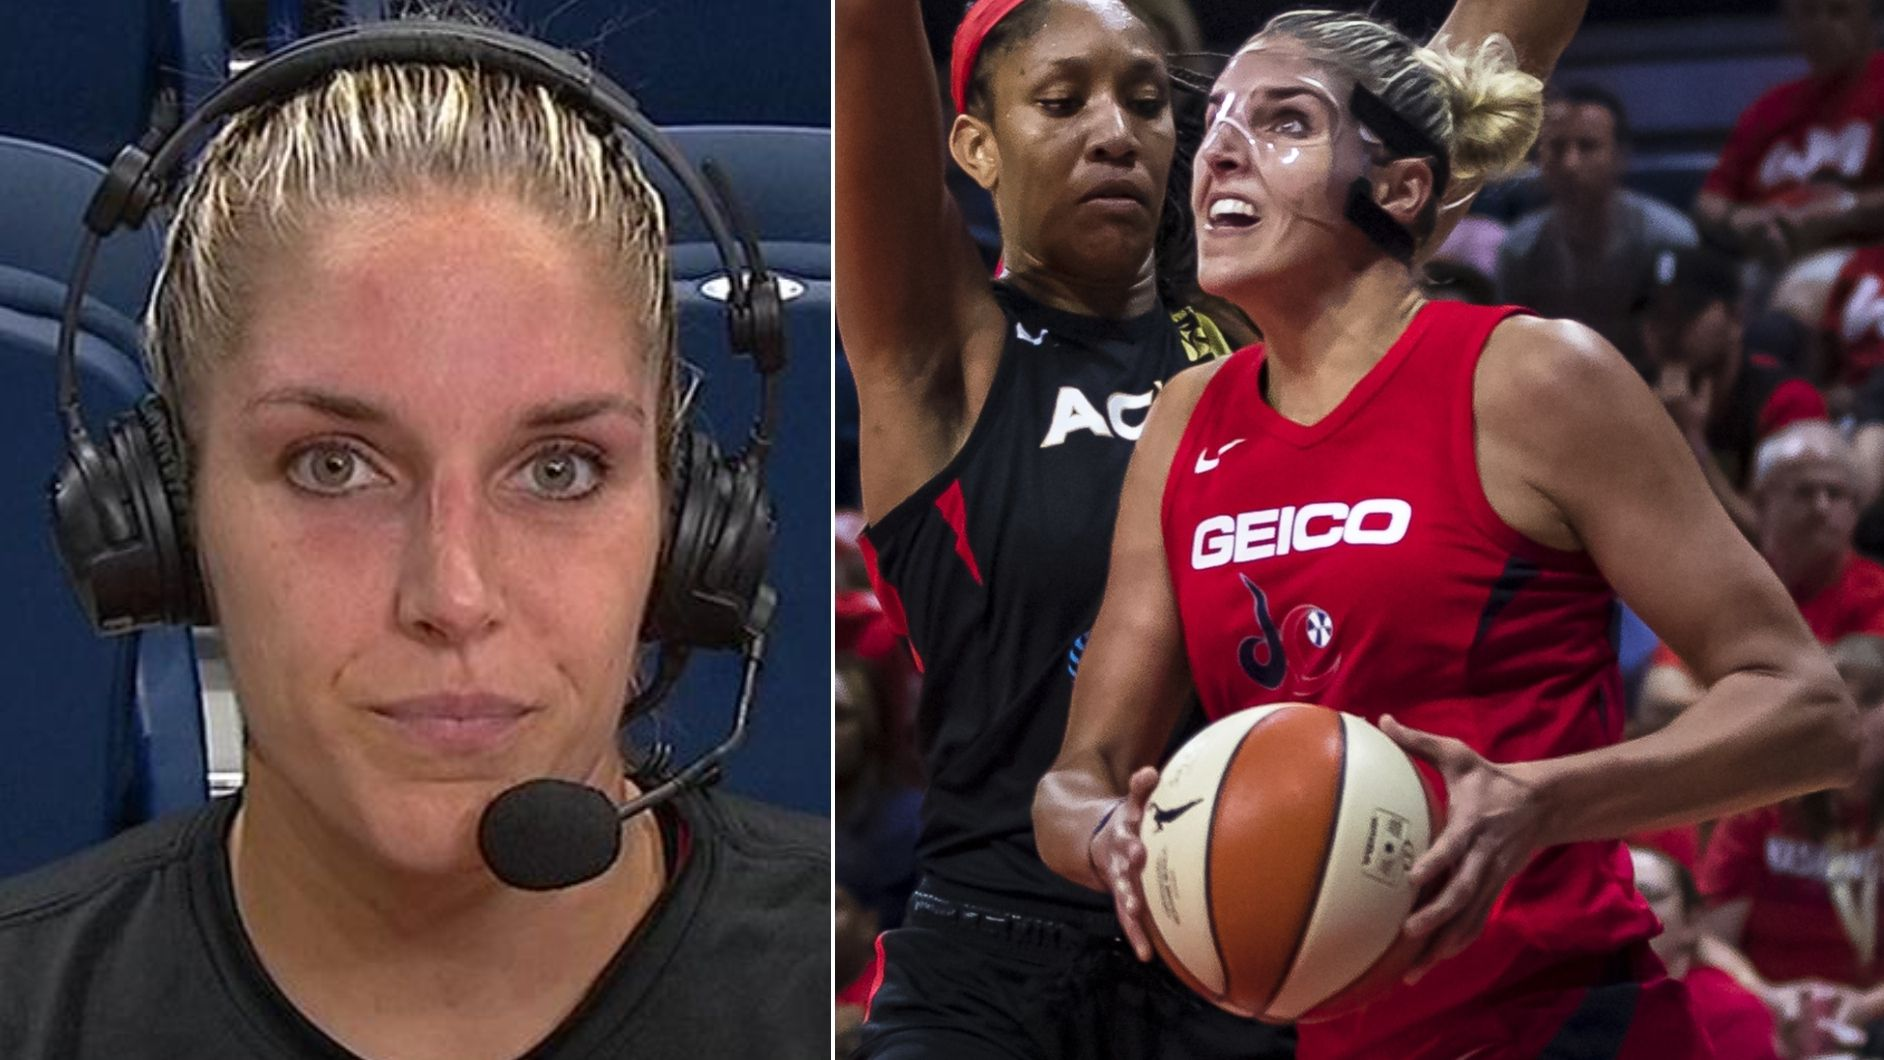 Elena Delle Donne's MVP-caliber season on display in WNBA playoffs